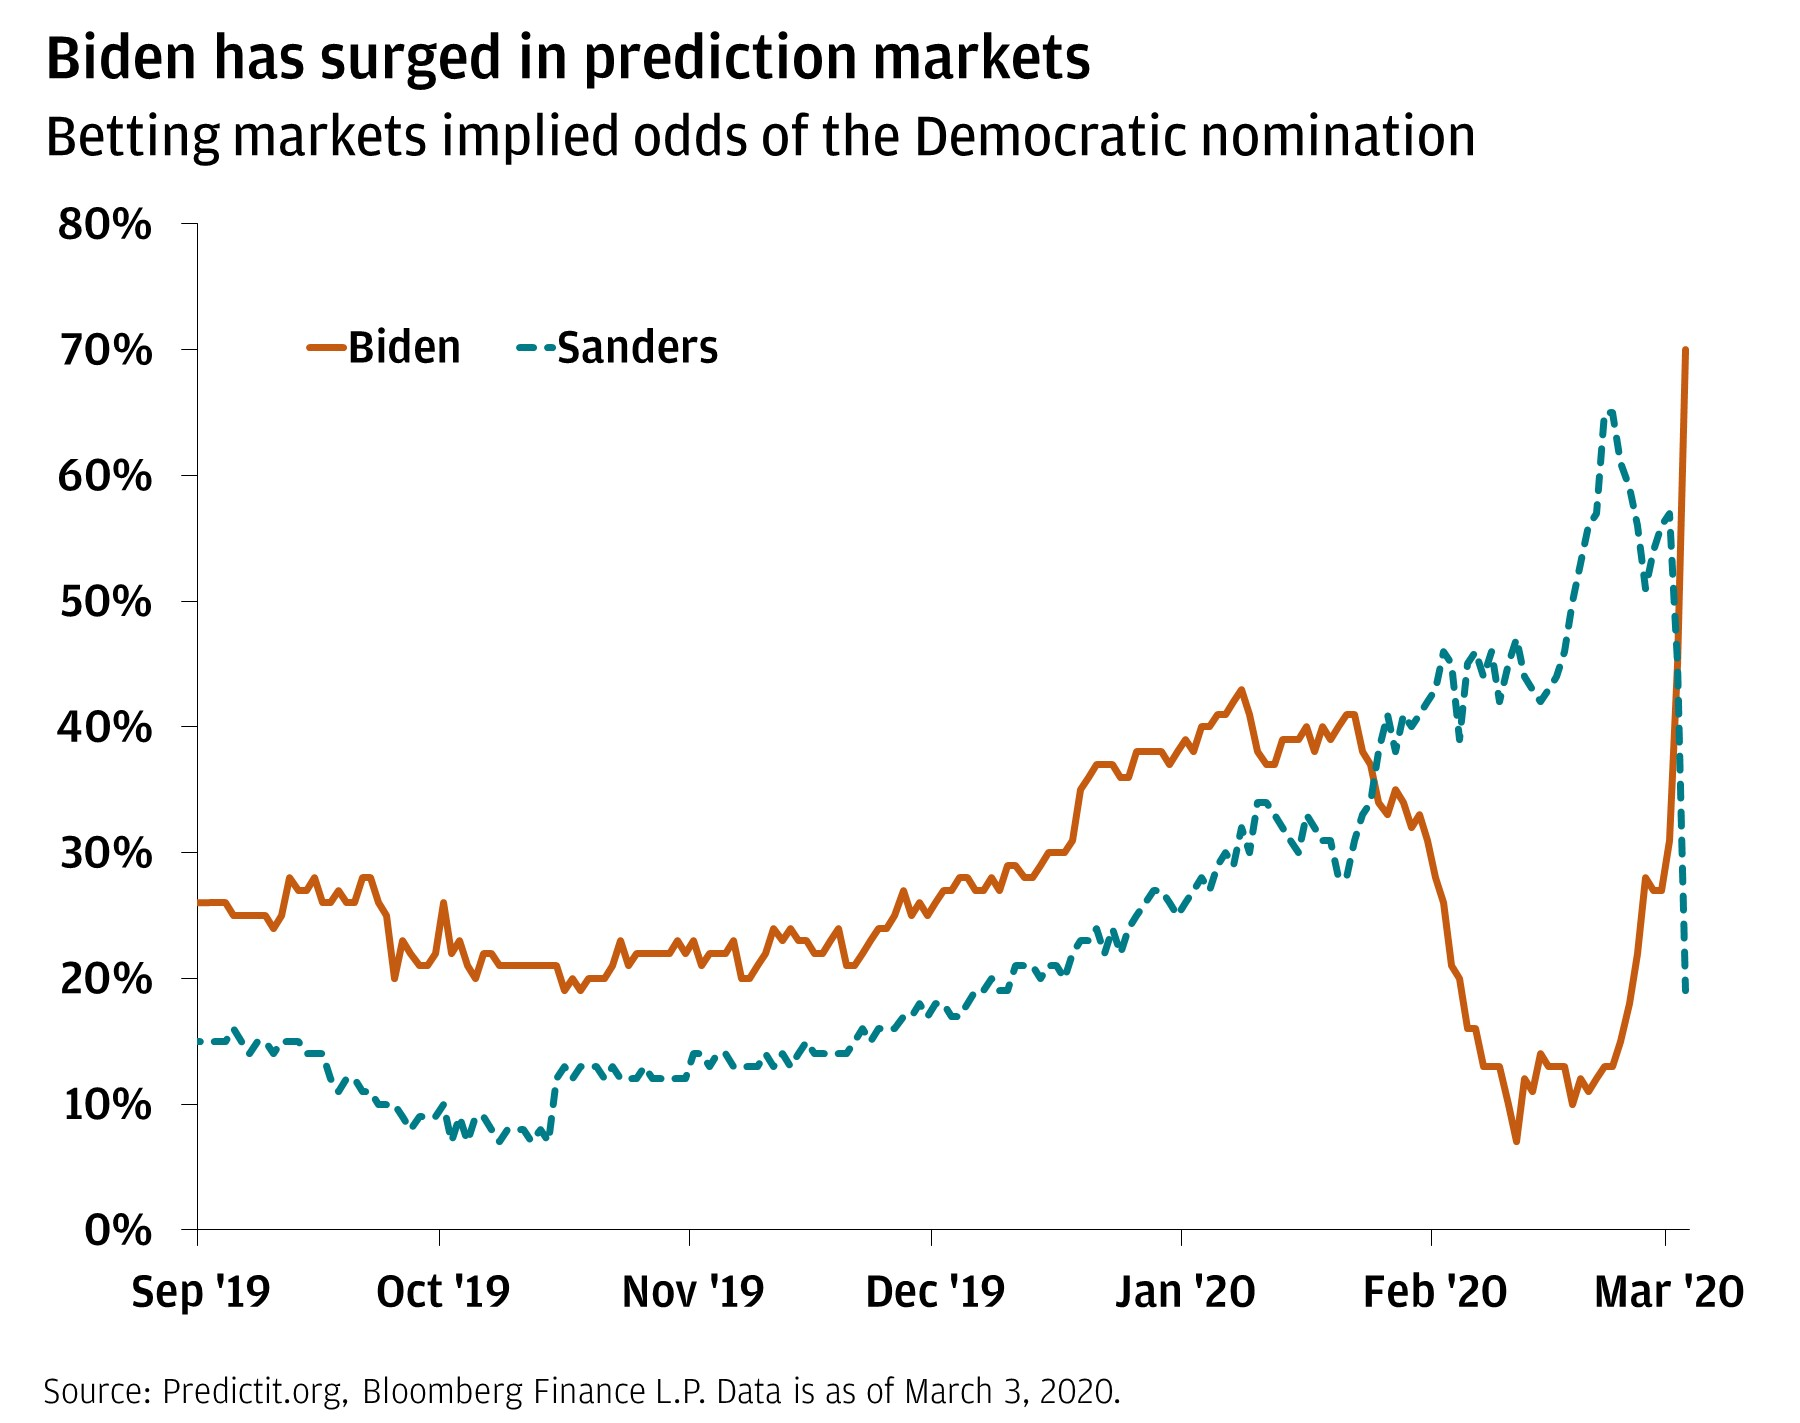 The line chart shows the percentage chance of winning that Biden and Sanders have had from September 2019 through March 2020. It shows that Biden's chance of winning has shot up recently, while Sanders's chance has decreased dramatically.